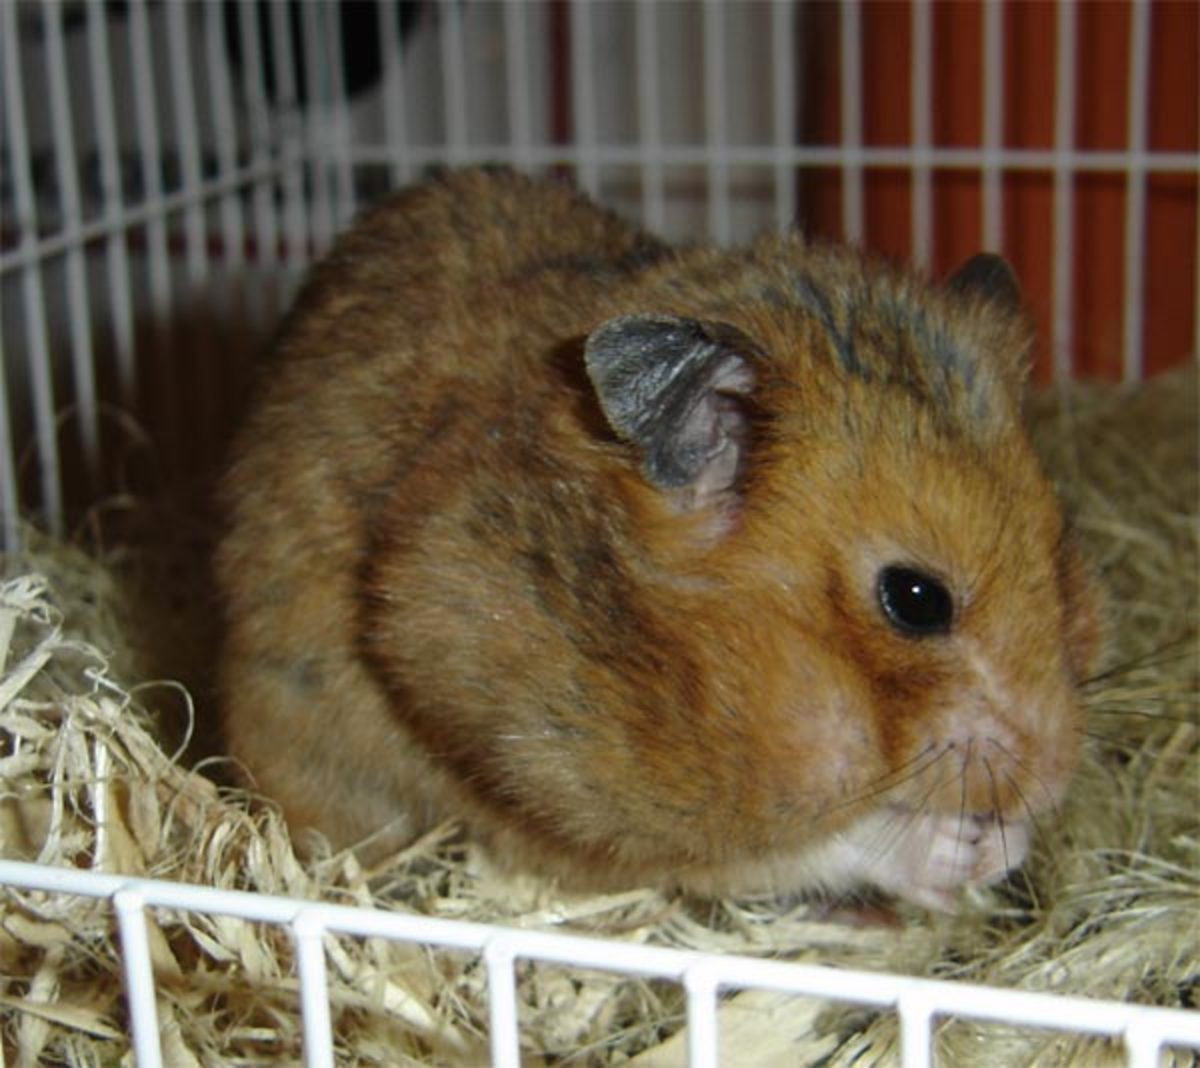 How to Care for Pet Hamsters: Behavior, Diet, Housing, and More